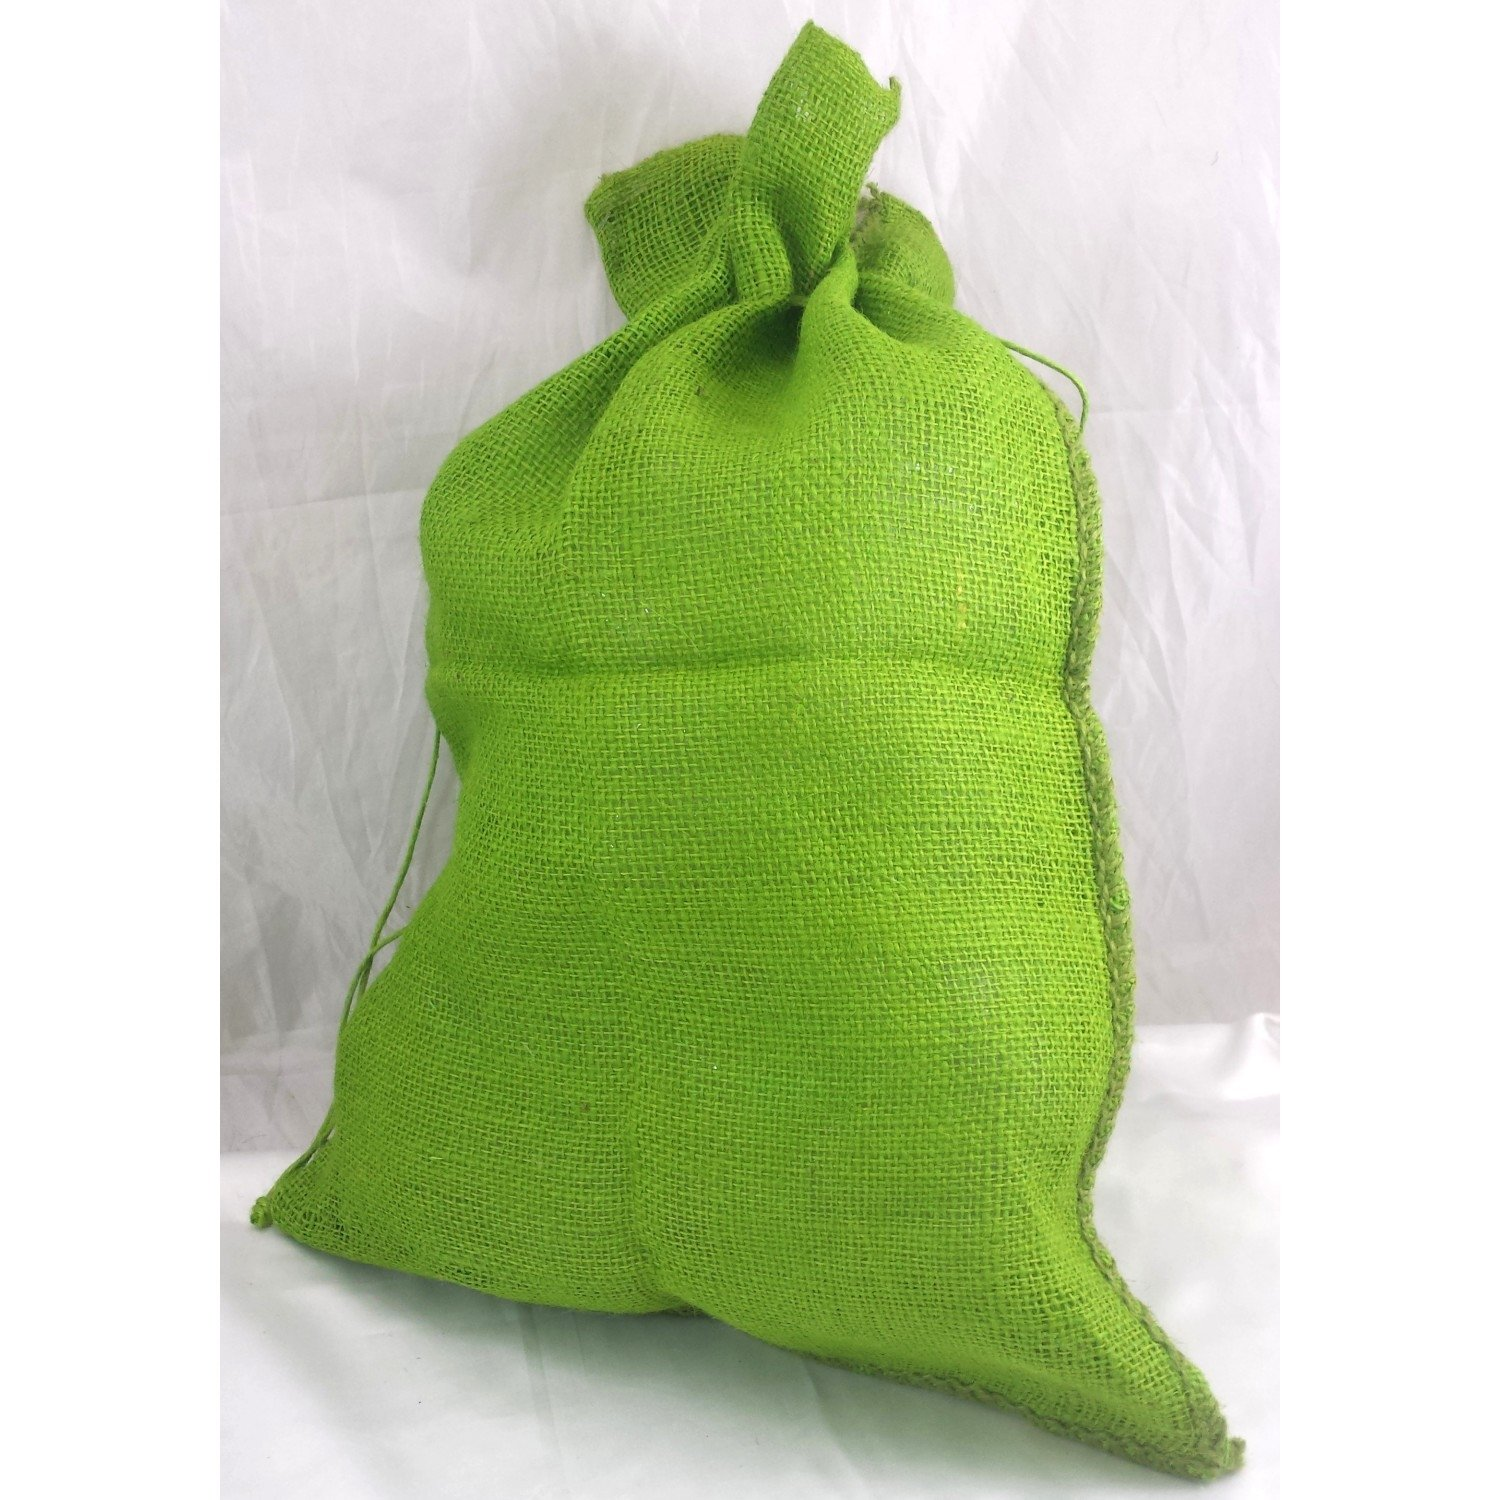 Kel-Toy Christmas and Everyday Gift Wrap & Crafting Jute Sacks in 3 Colors BUYERS' CHOICE (2, green) by Kel-Toy